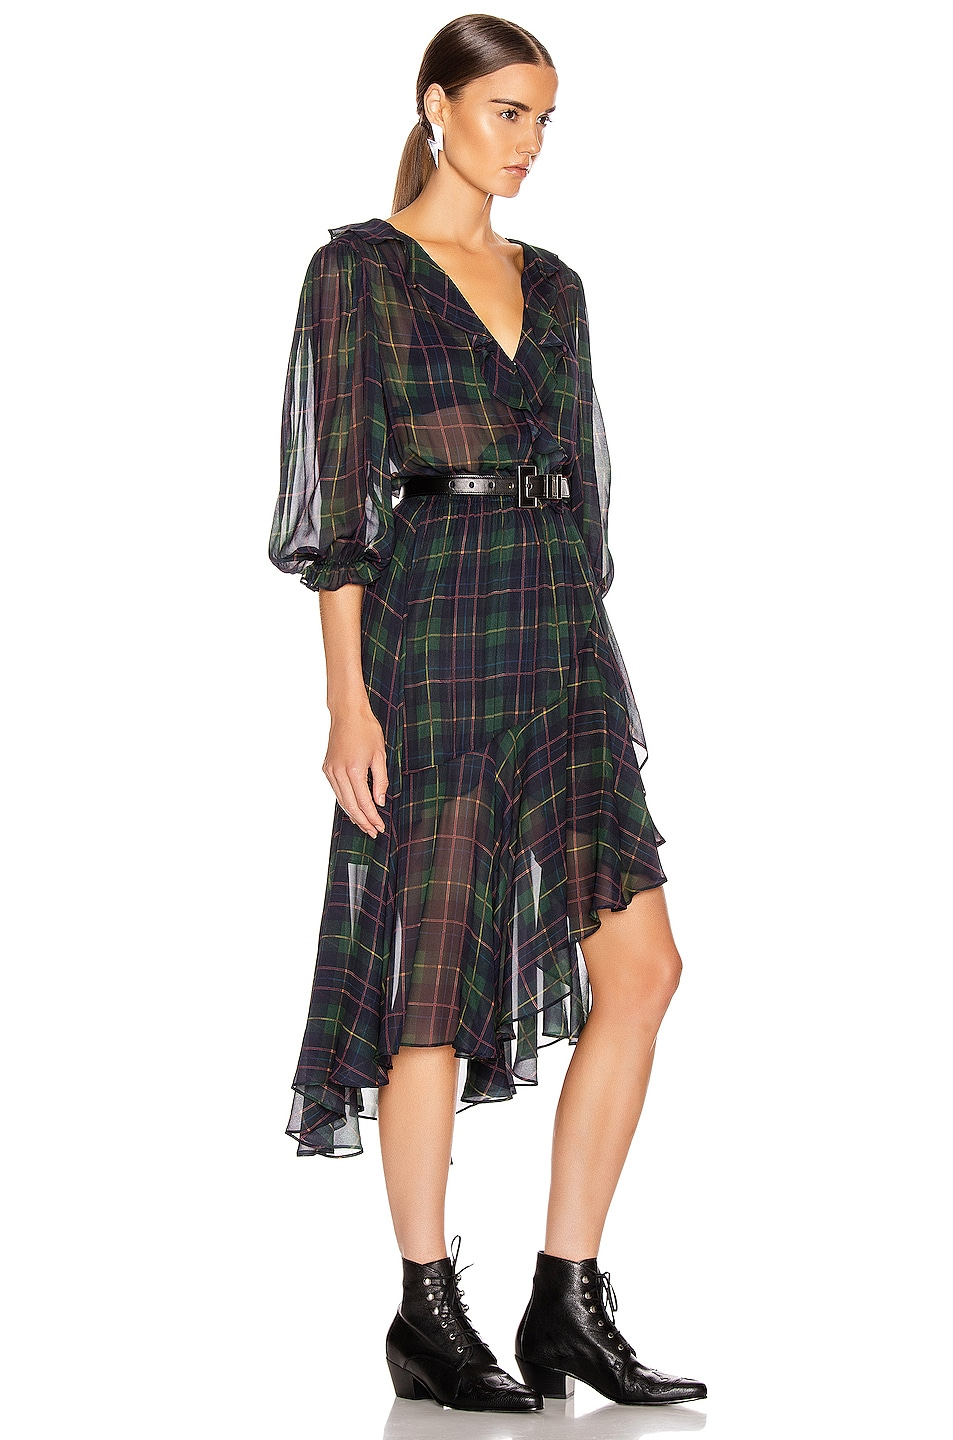 Image 2 of ICONS Objects of Devotion The Flamenco Dress in Classic Tartan